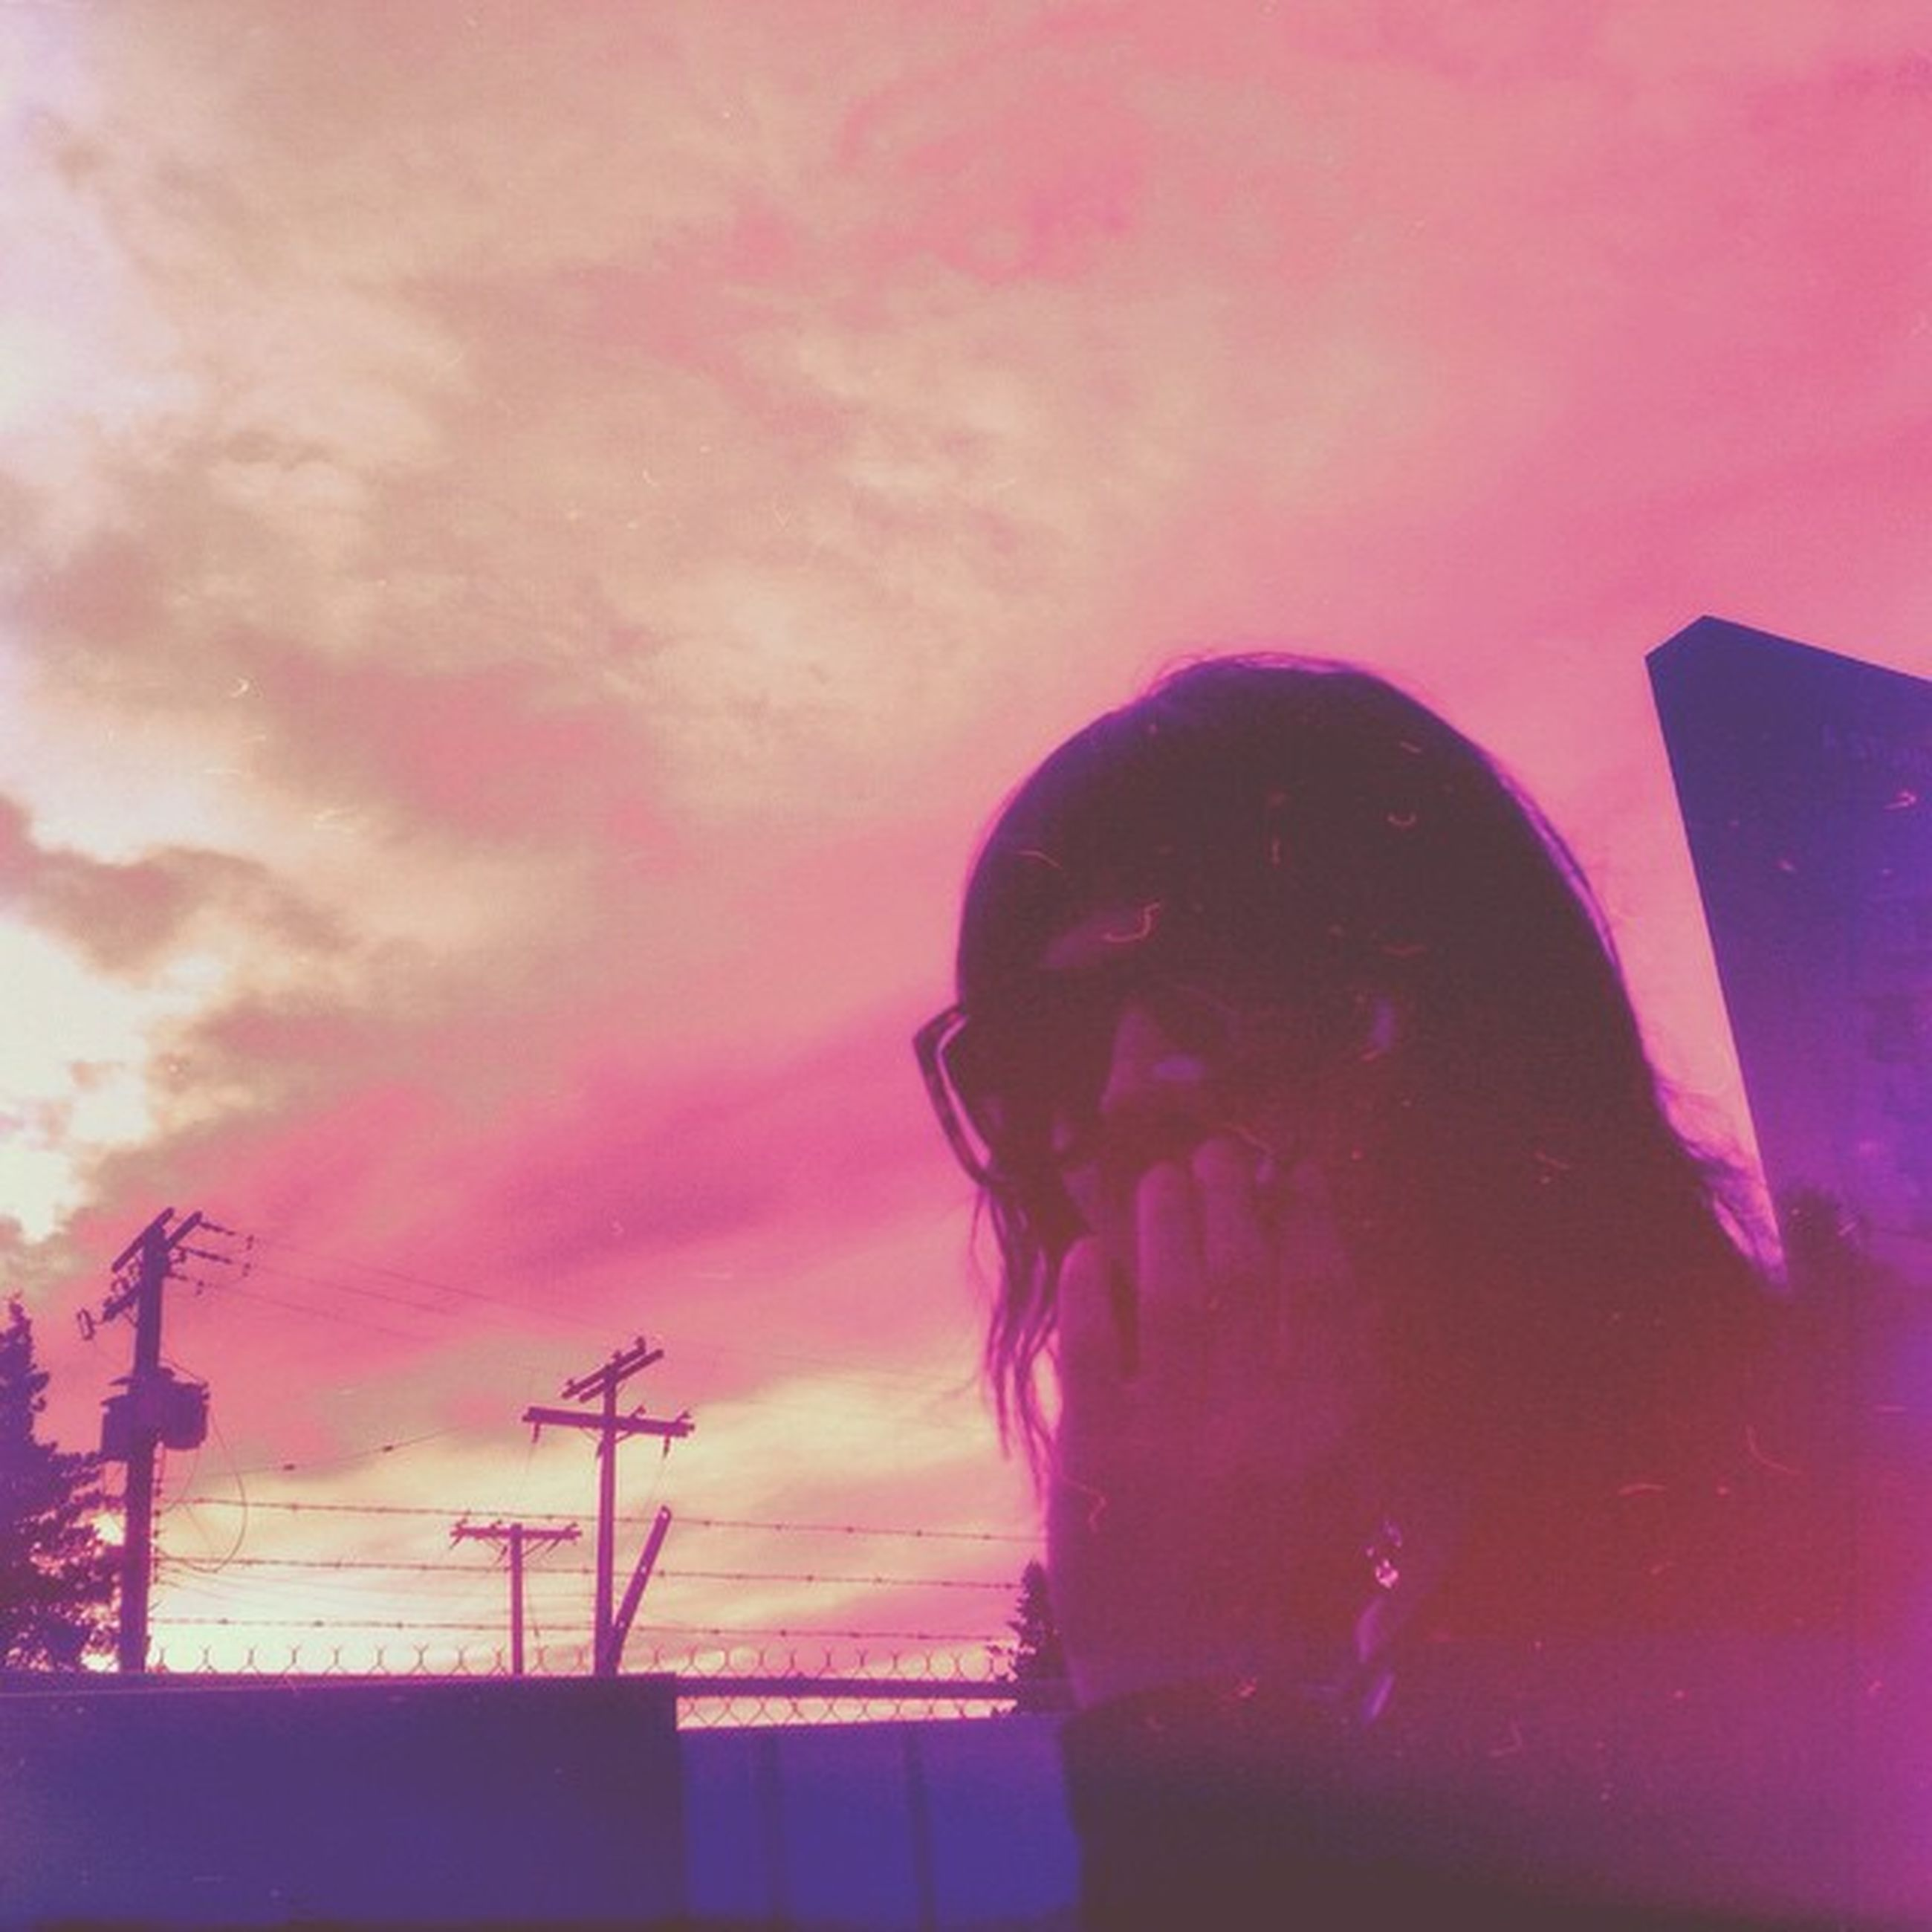 sky, low angle view, lifestyles, silhouette, leisure activity, cloud - sky, sunset, built structure, architecture, building exterior, dusk, standing, outdoors, waist up, cloud, three quarter length, technology, headshot